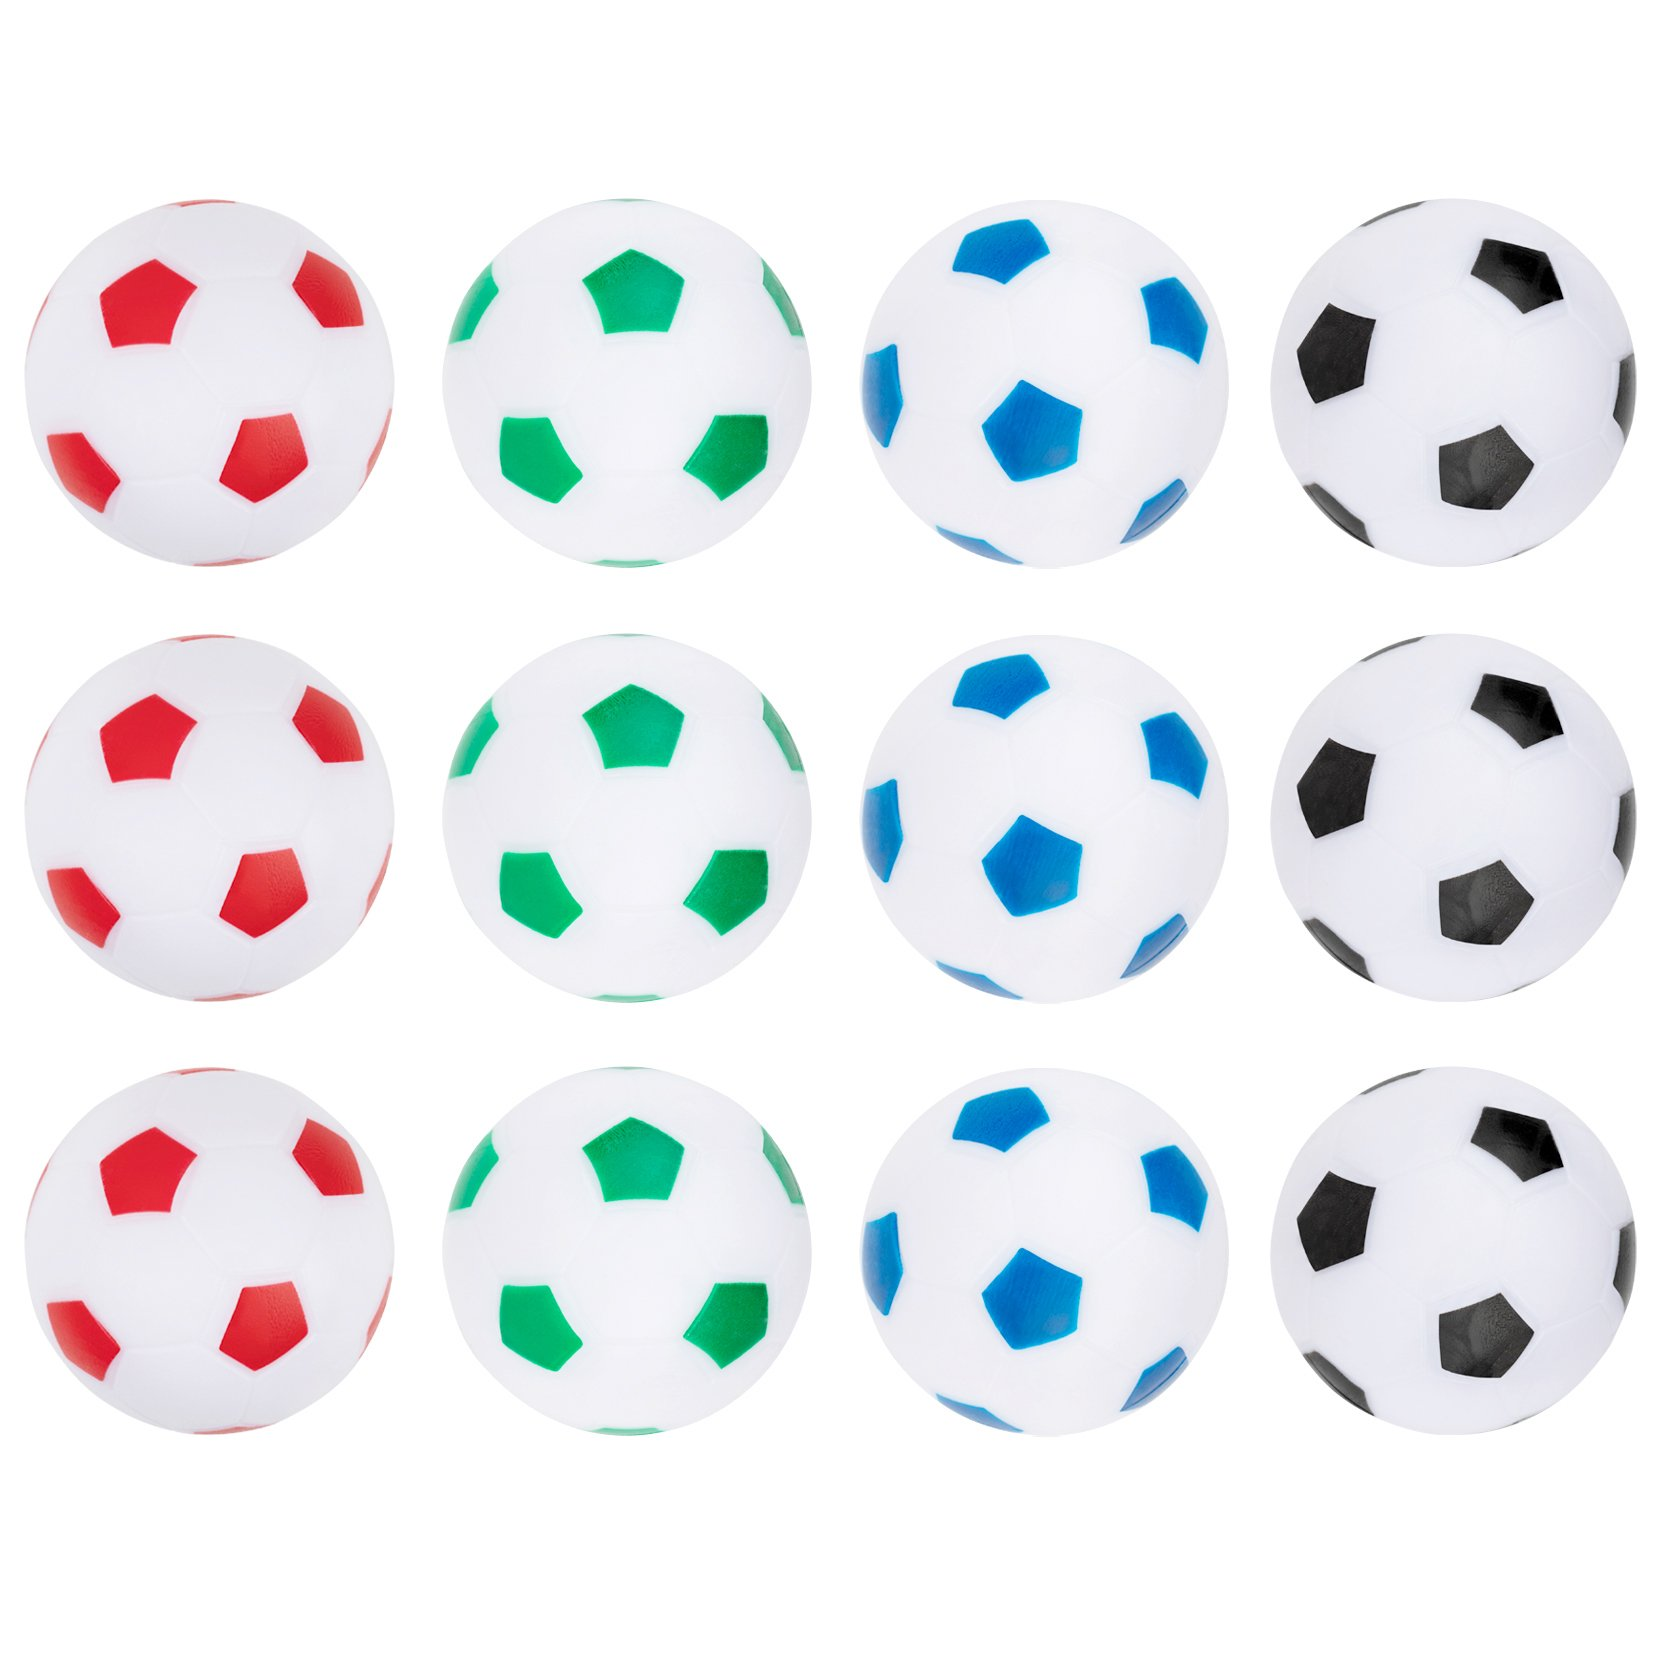 Truscope Sports Foosball Table Soccer Replacement Balls - 36mm - (12 Pack, Multi Color)